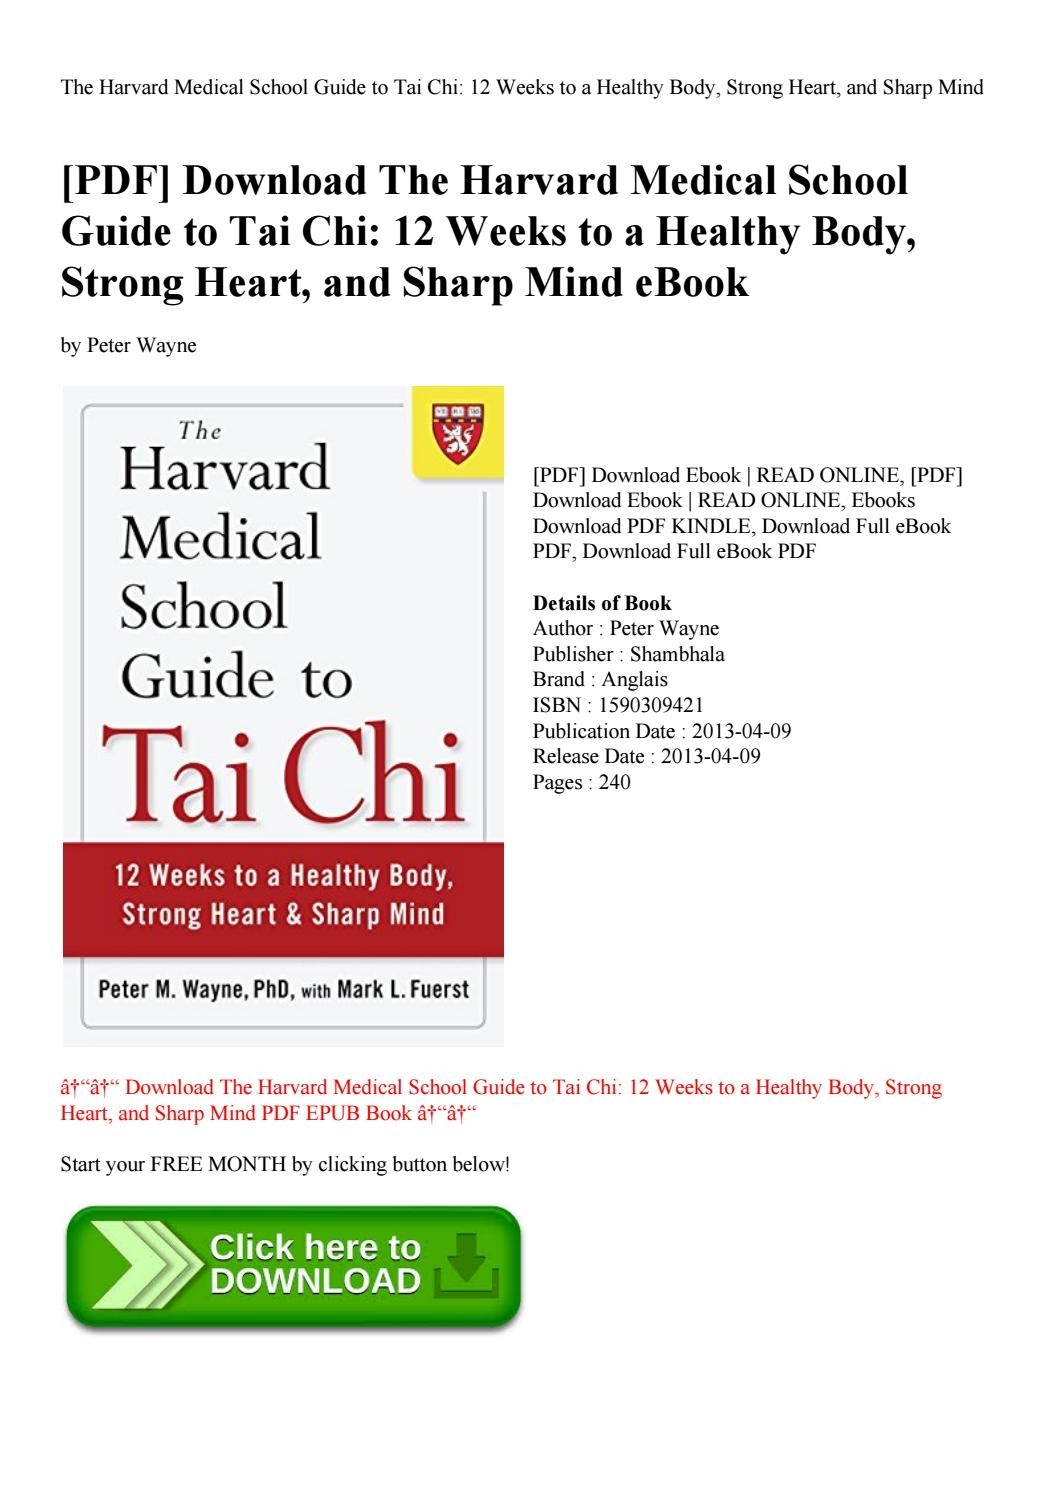 Pdf] Download The Harvard Medical School Guide To Tai Chi 12 Weeks with regard to 12 Hours In 12 Weeks Pdf Download